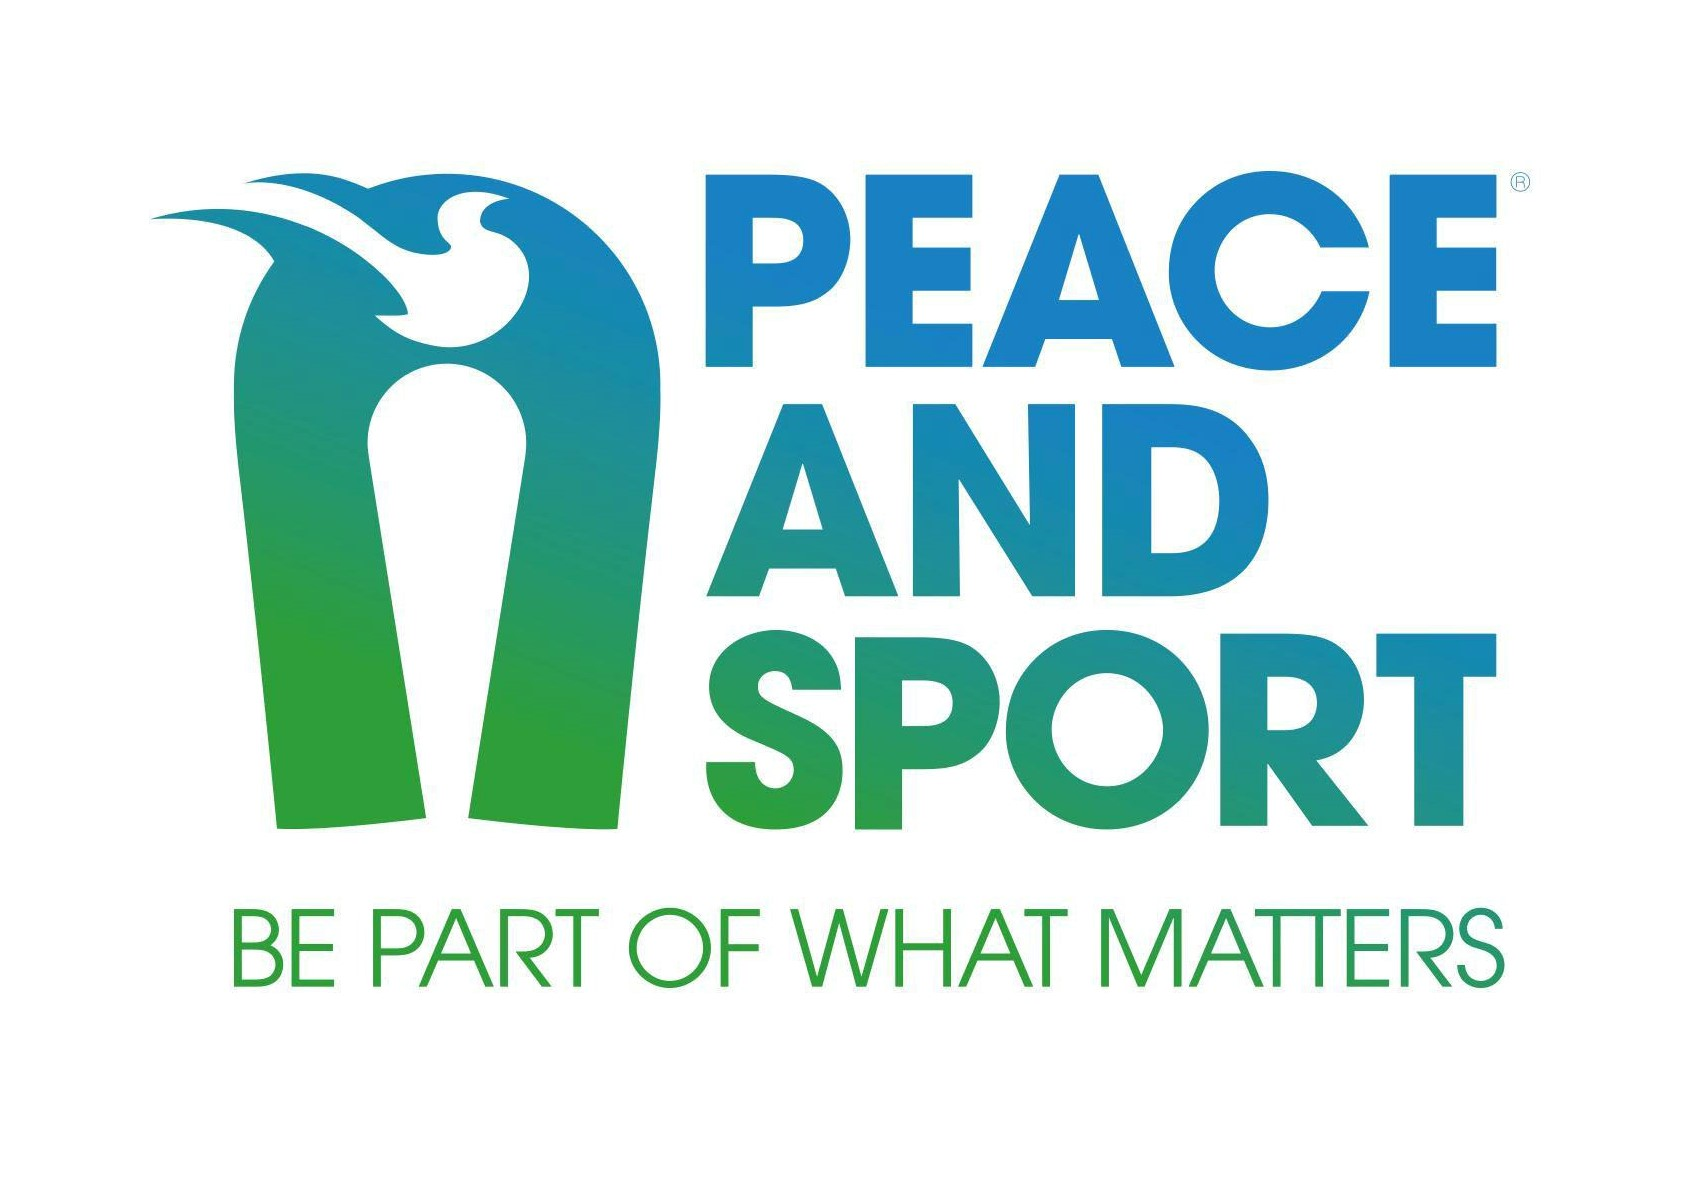 Peace and sport logo.jpeg